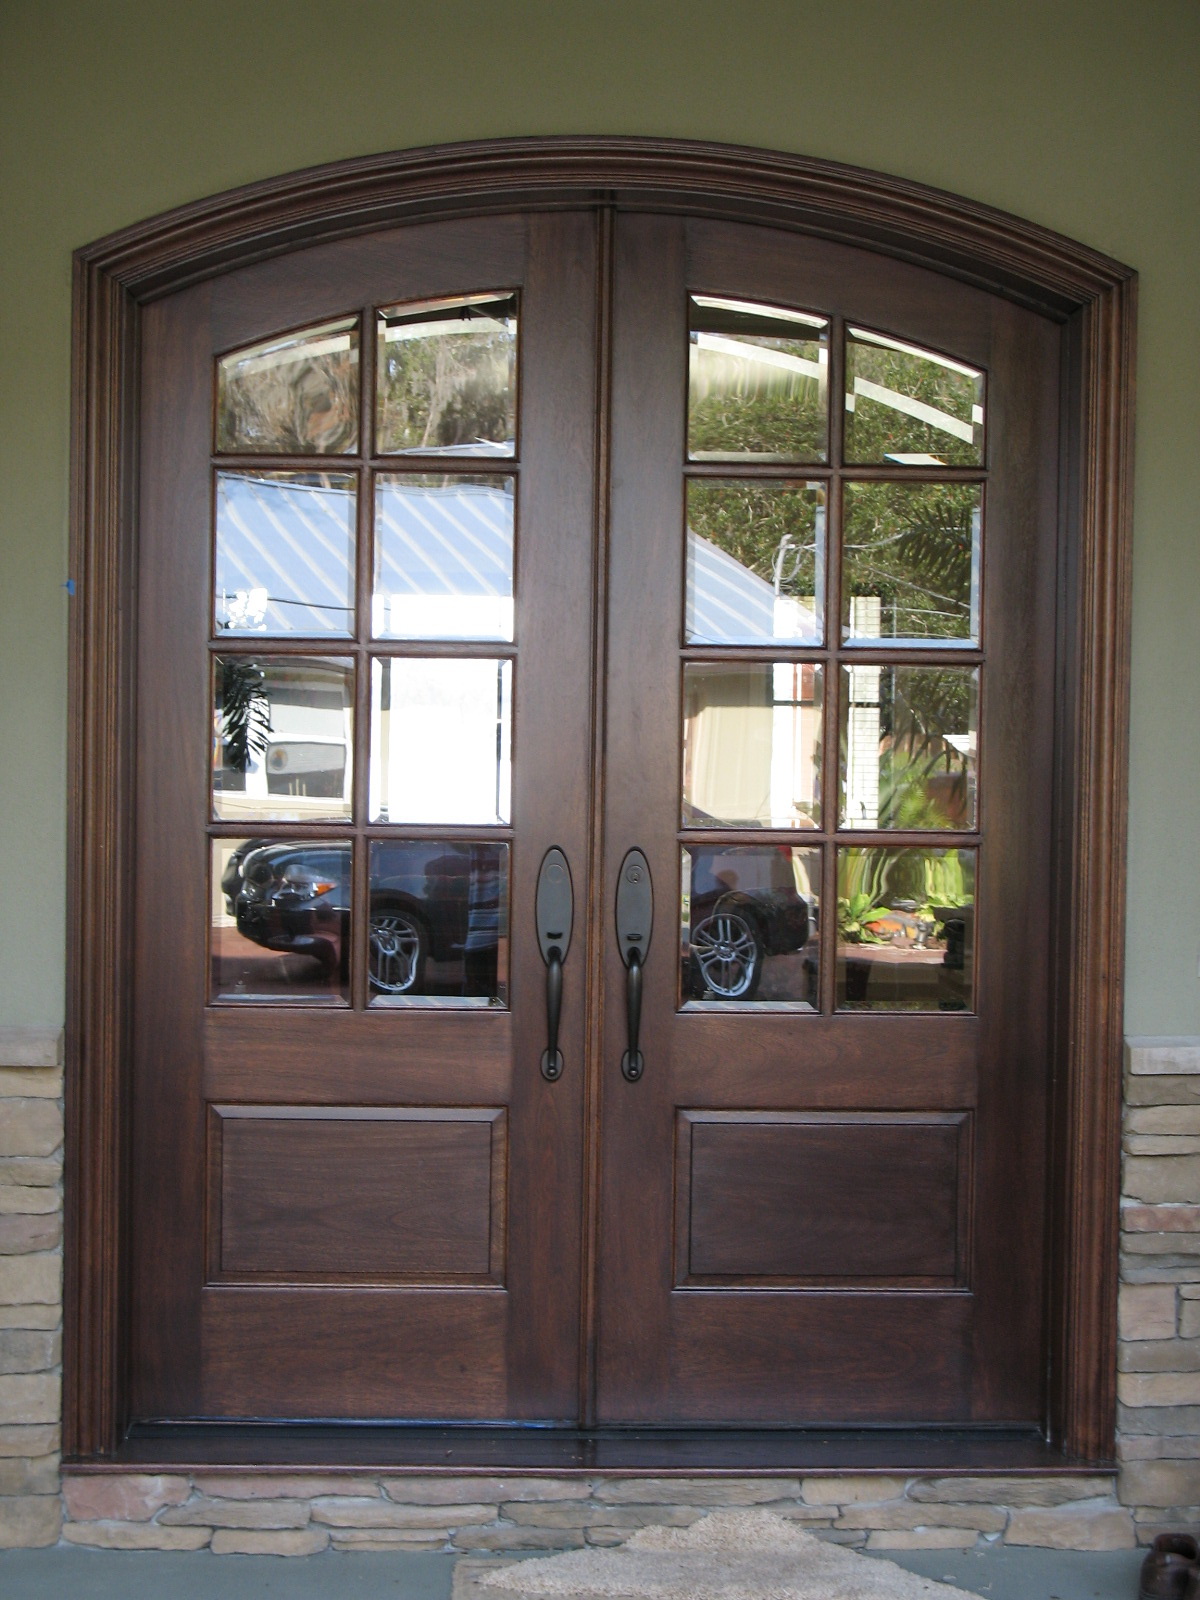 1000 images about front doors on pinterest for Exterior double entry doors